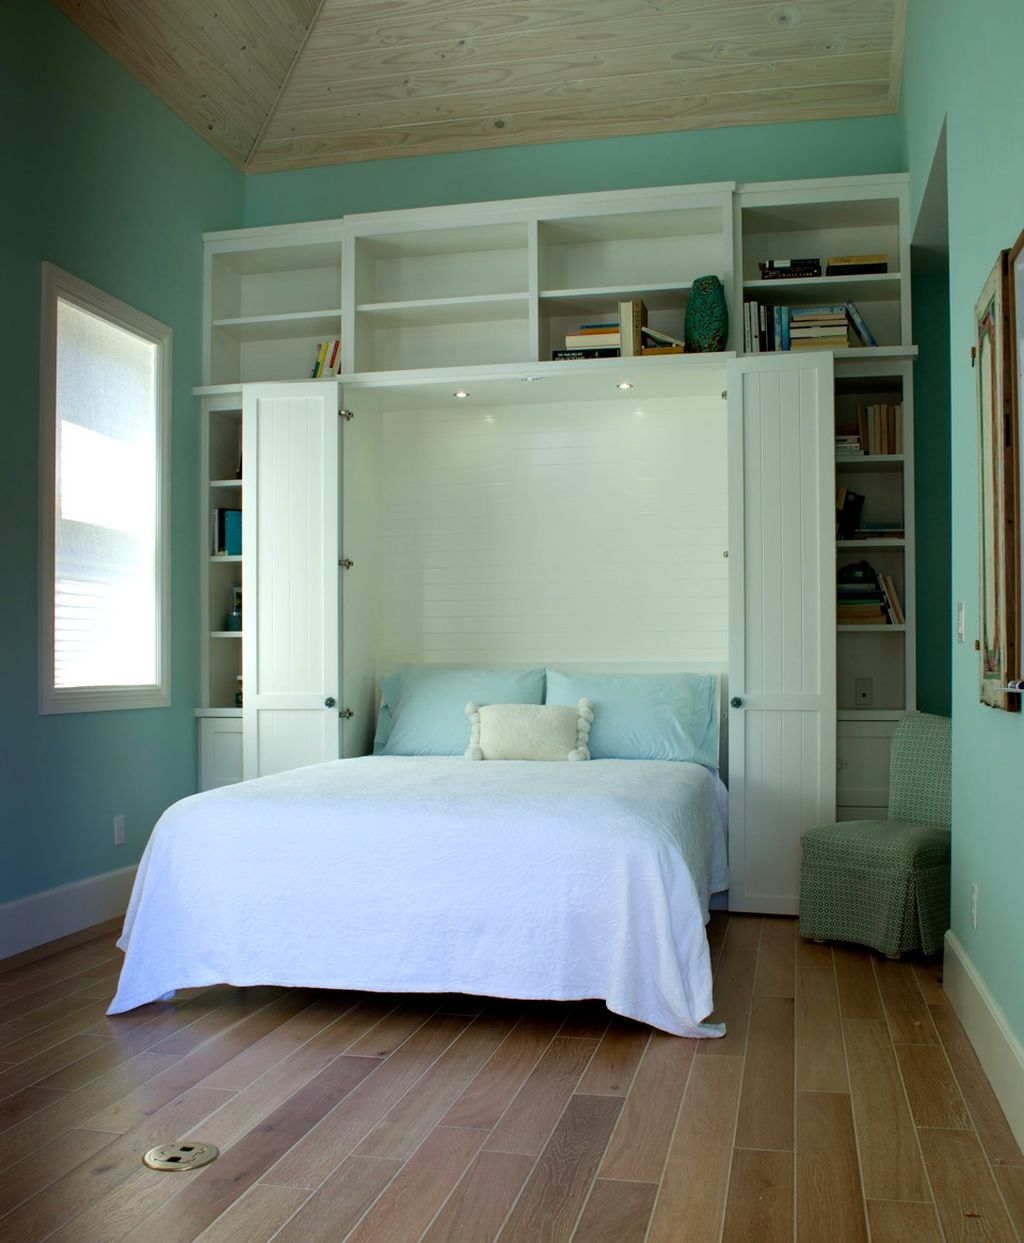 20 Space Saving Murphy Bed Design Ideas For Small Rooms